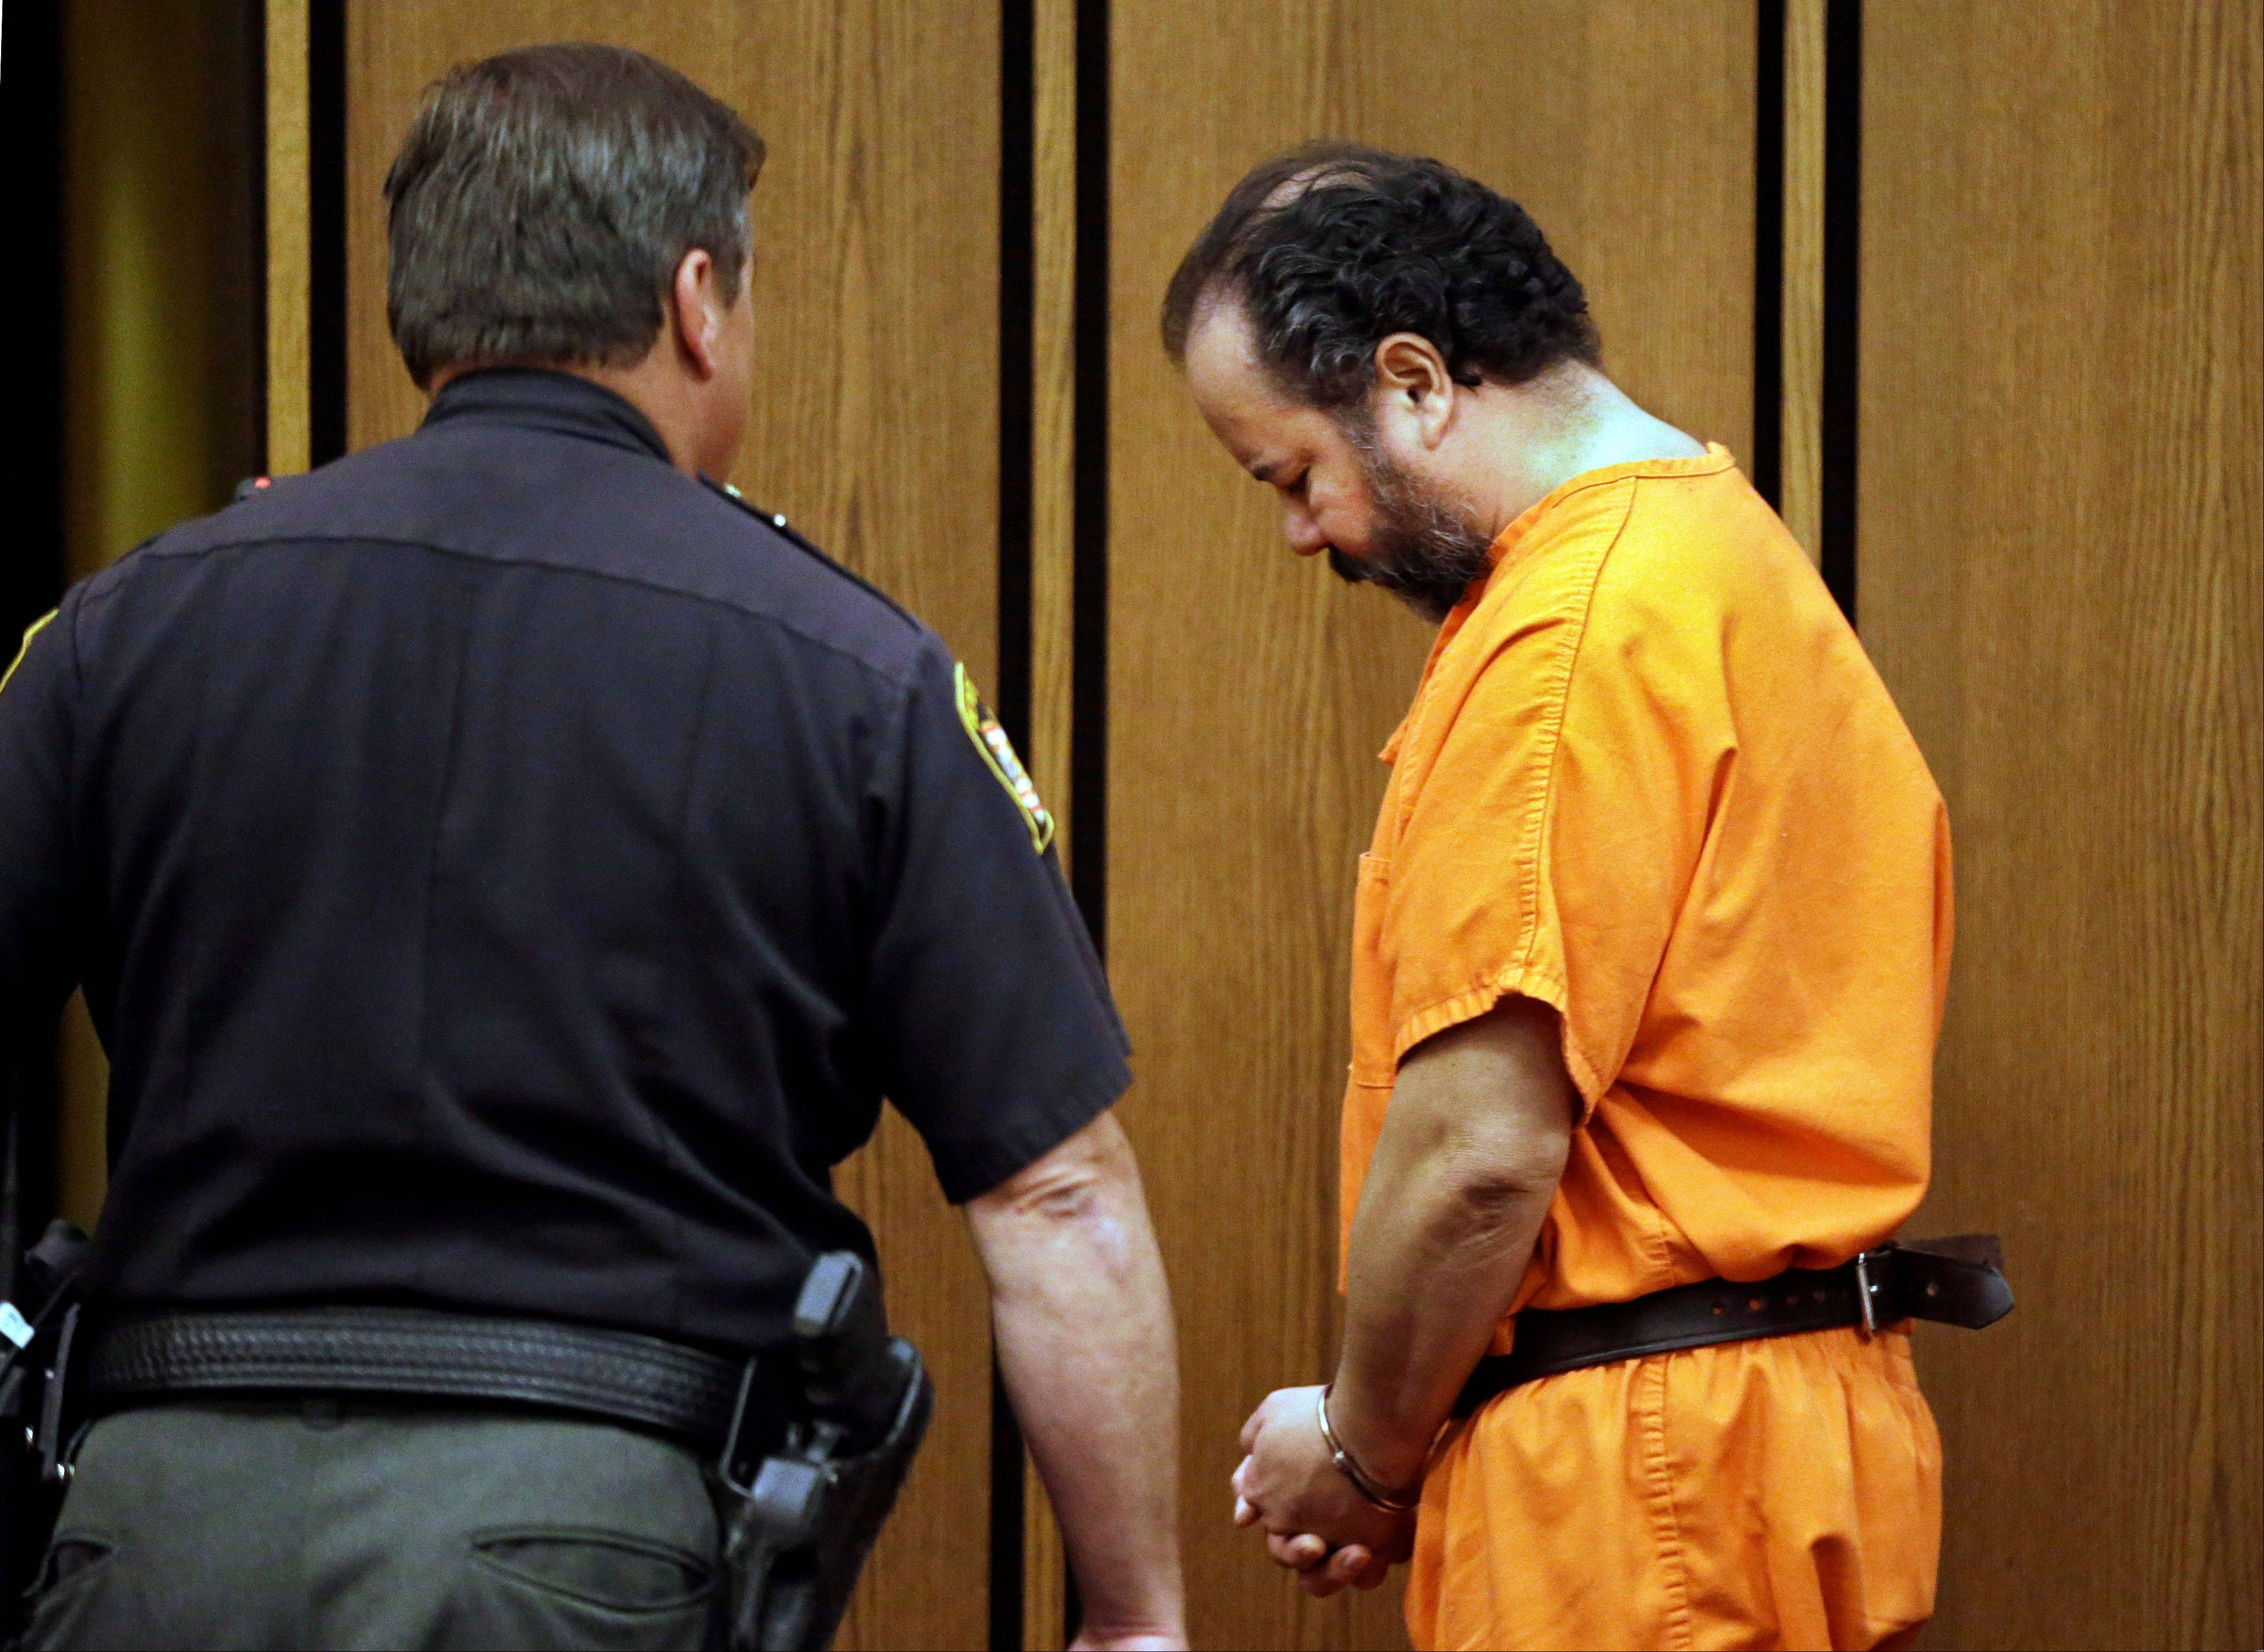 Ariel Castro is led back to jail after a hearing in Cuyahoga County Common Pleas Court in Cleveland, Wednesday, July 3, 2013. Castro is accused of holding three women captive for nearly a decade.